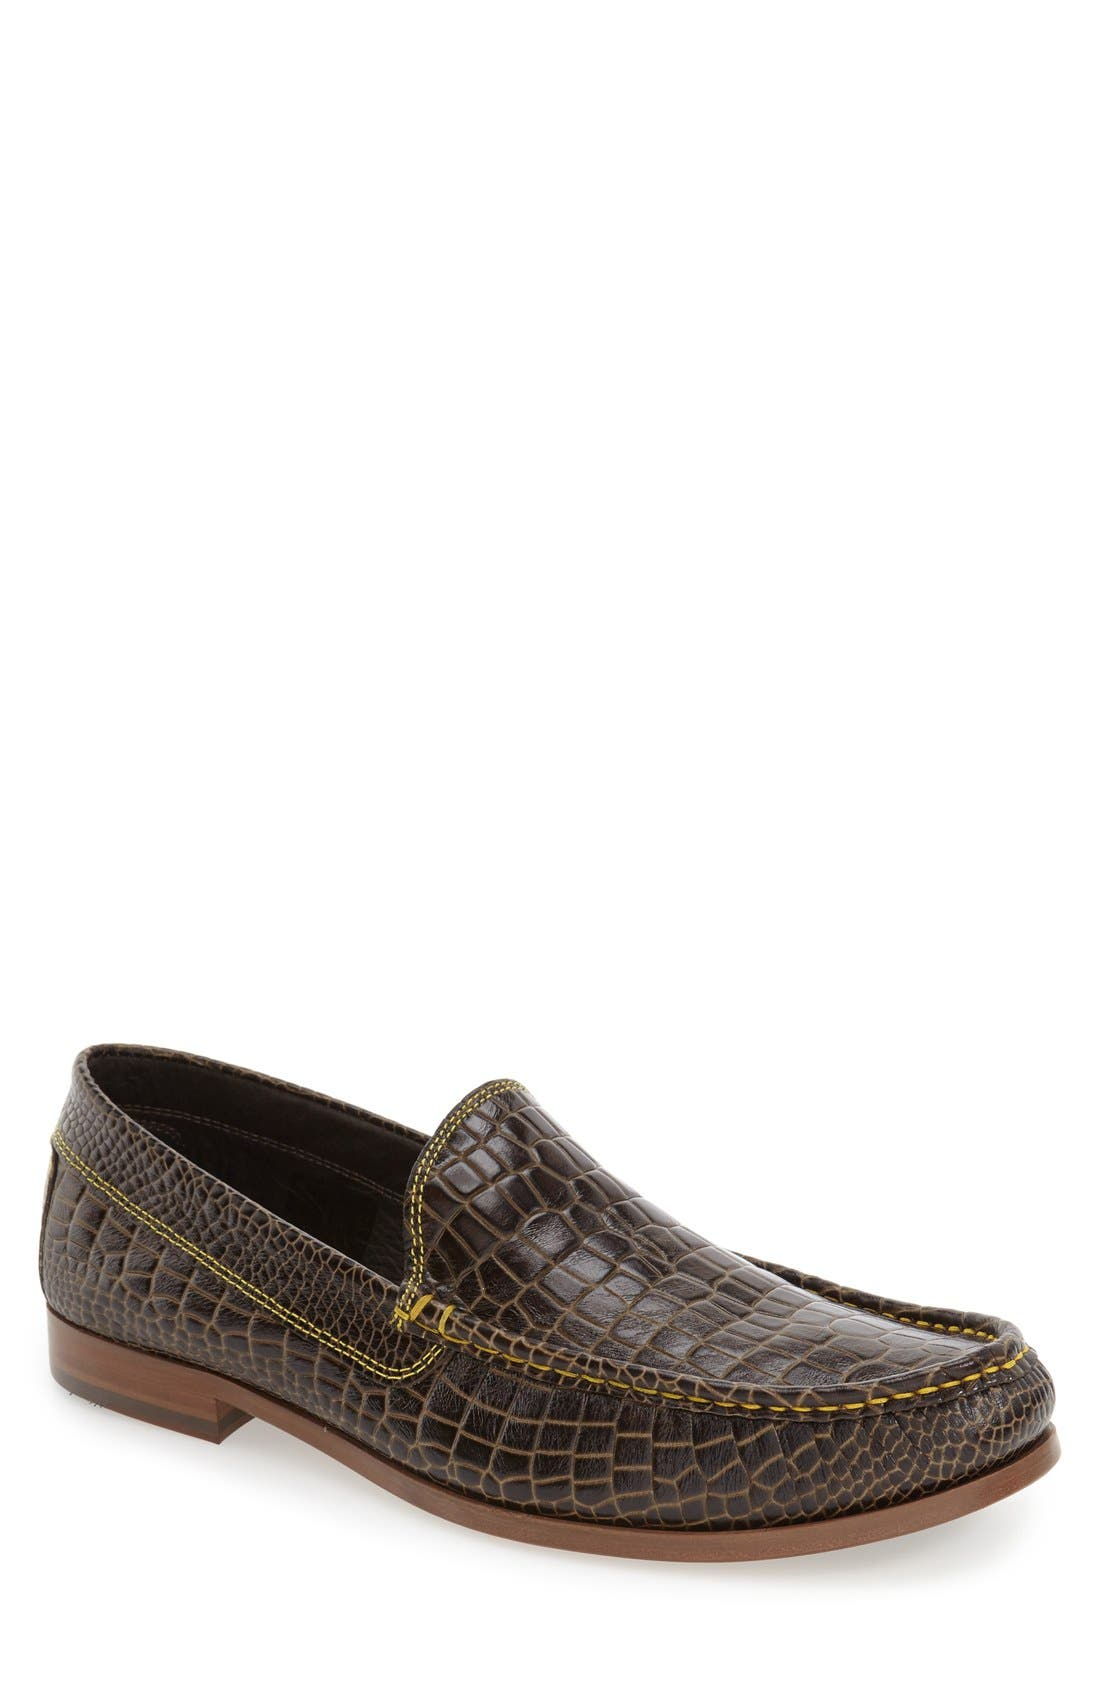 Donald J Pliner 'Nate' Loafer,                             Alternate thumbnail 21, color,